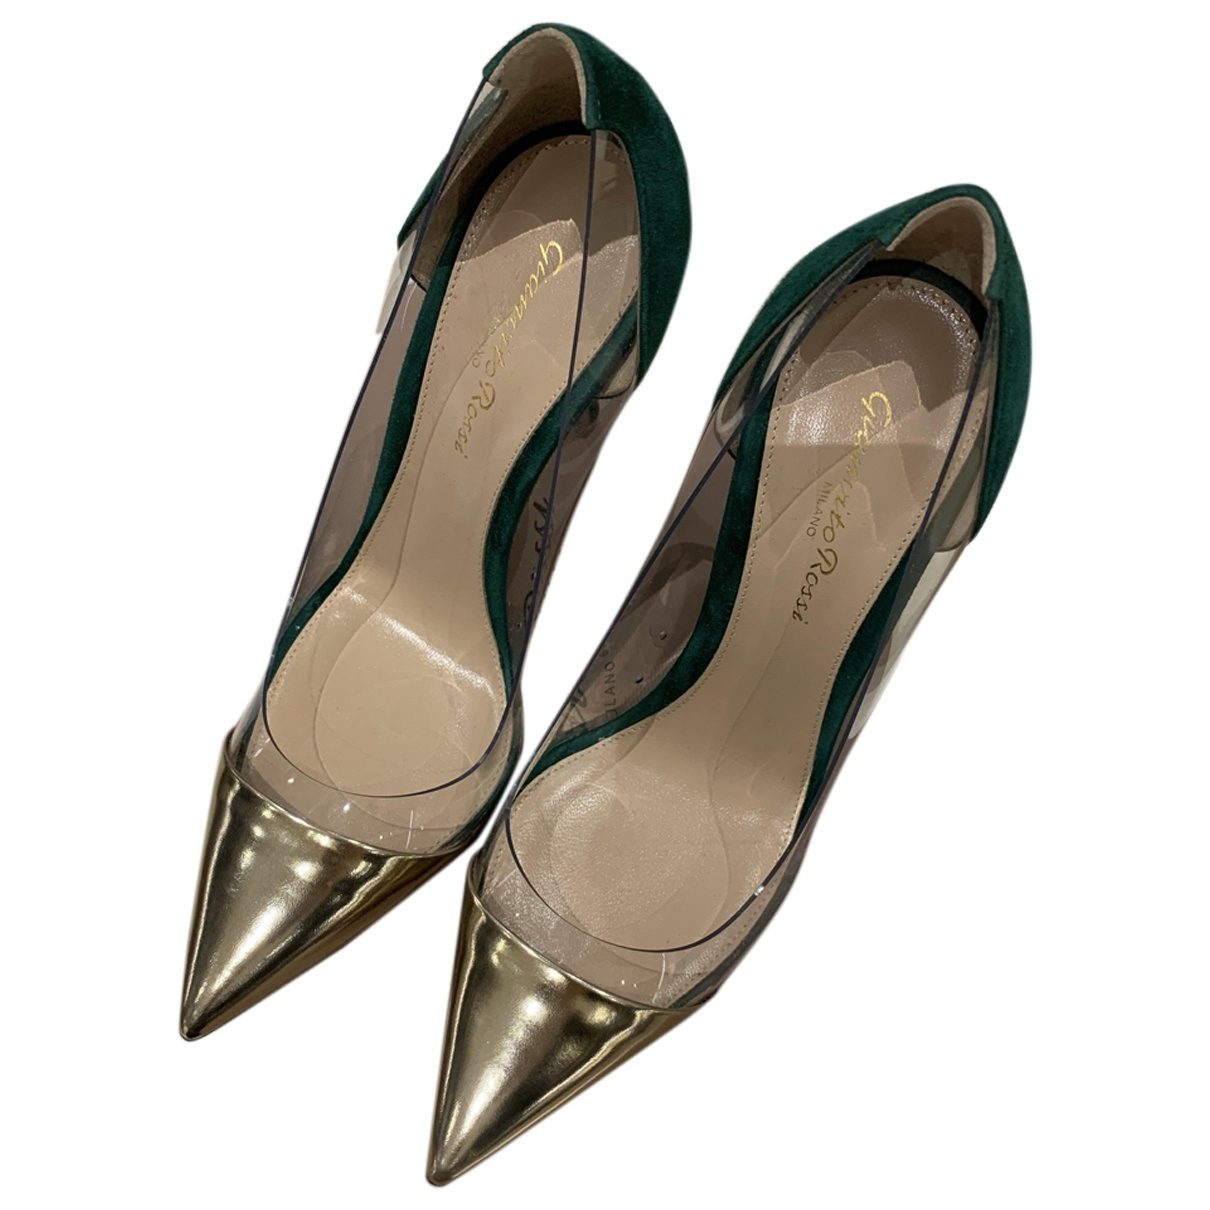 Gianvito Rossi Plexi Green Suede Heels for Women 37 EU